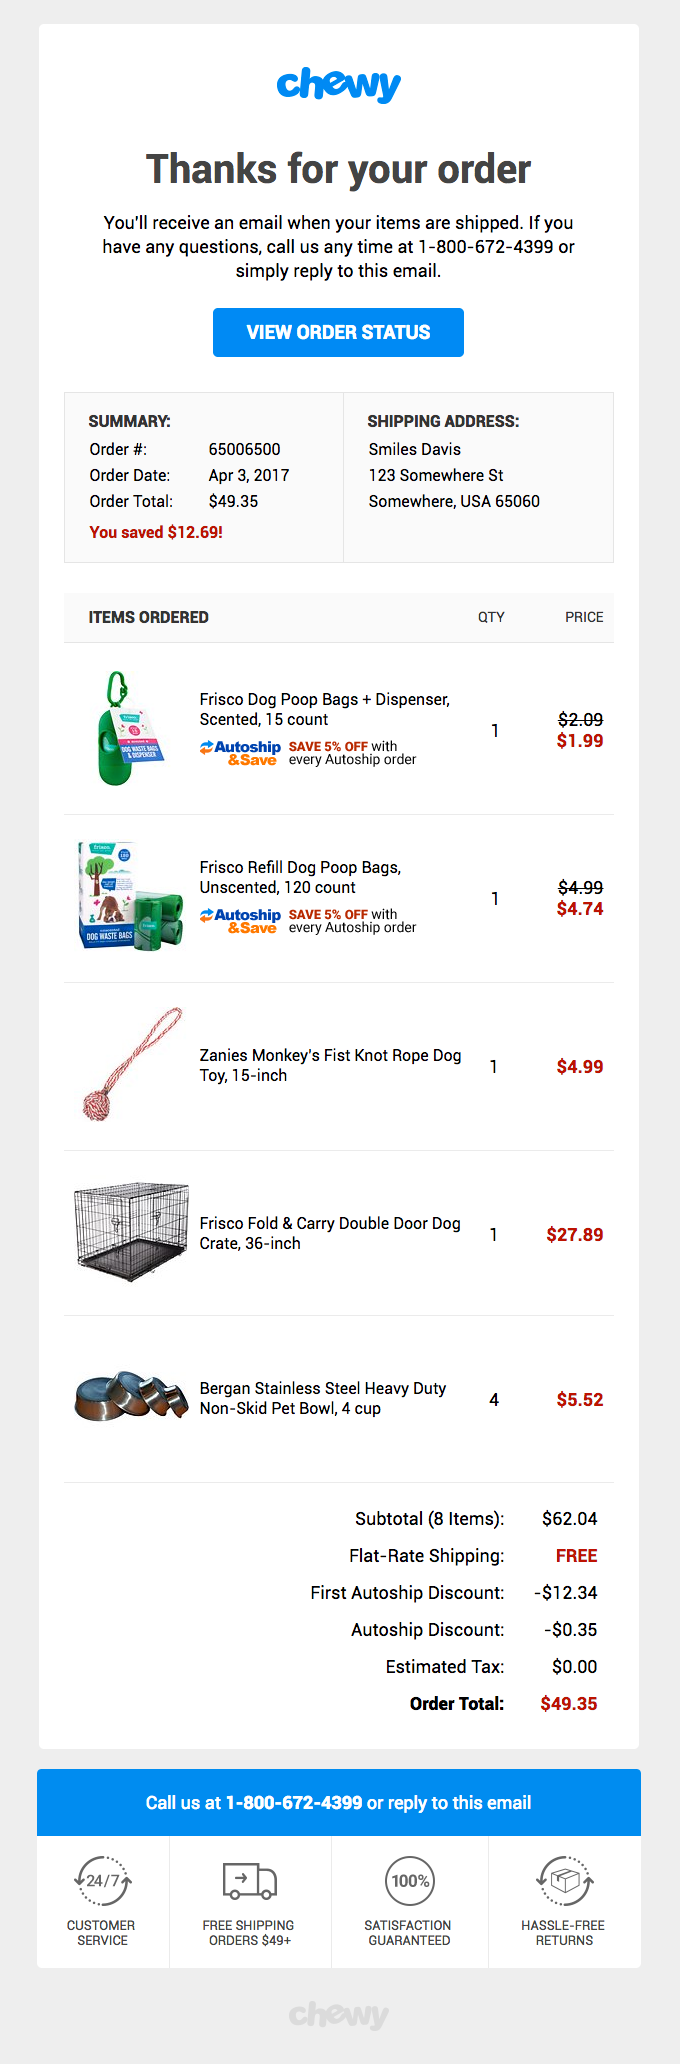 Your order with Chewy.com (http://chewy.com/)